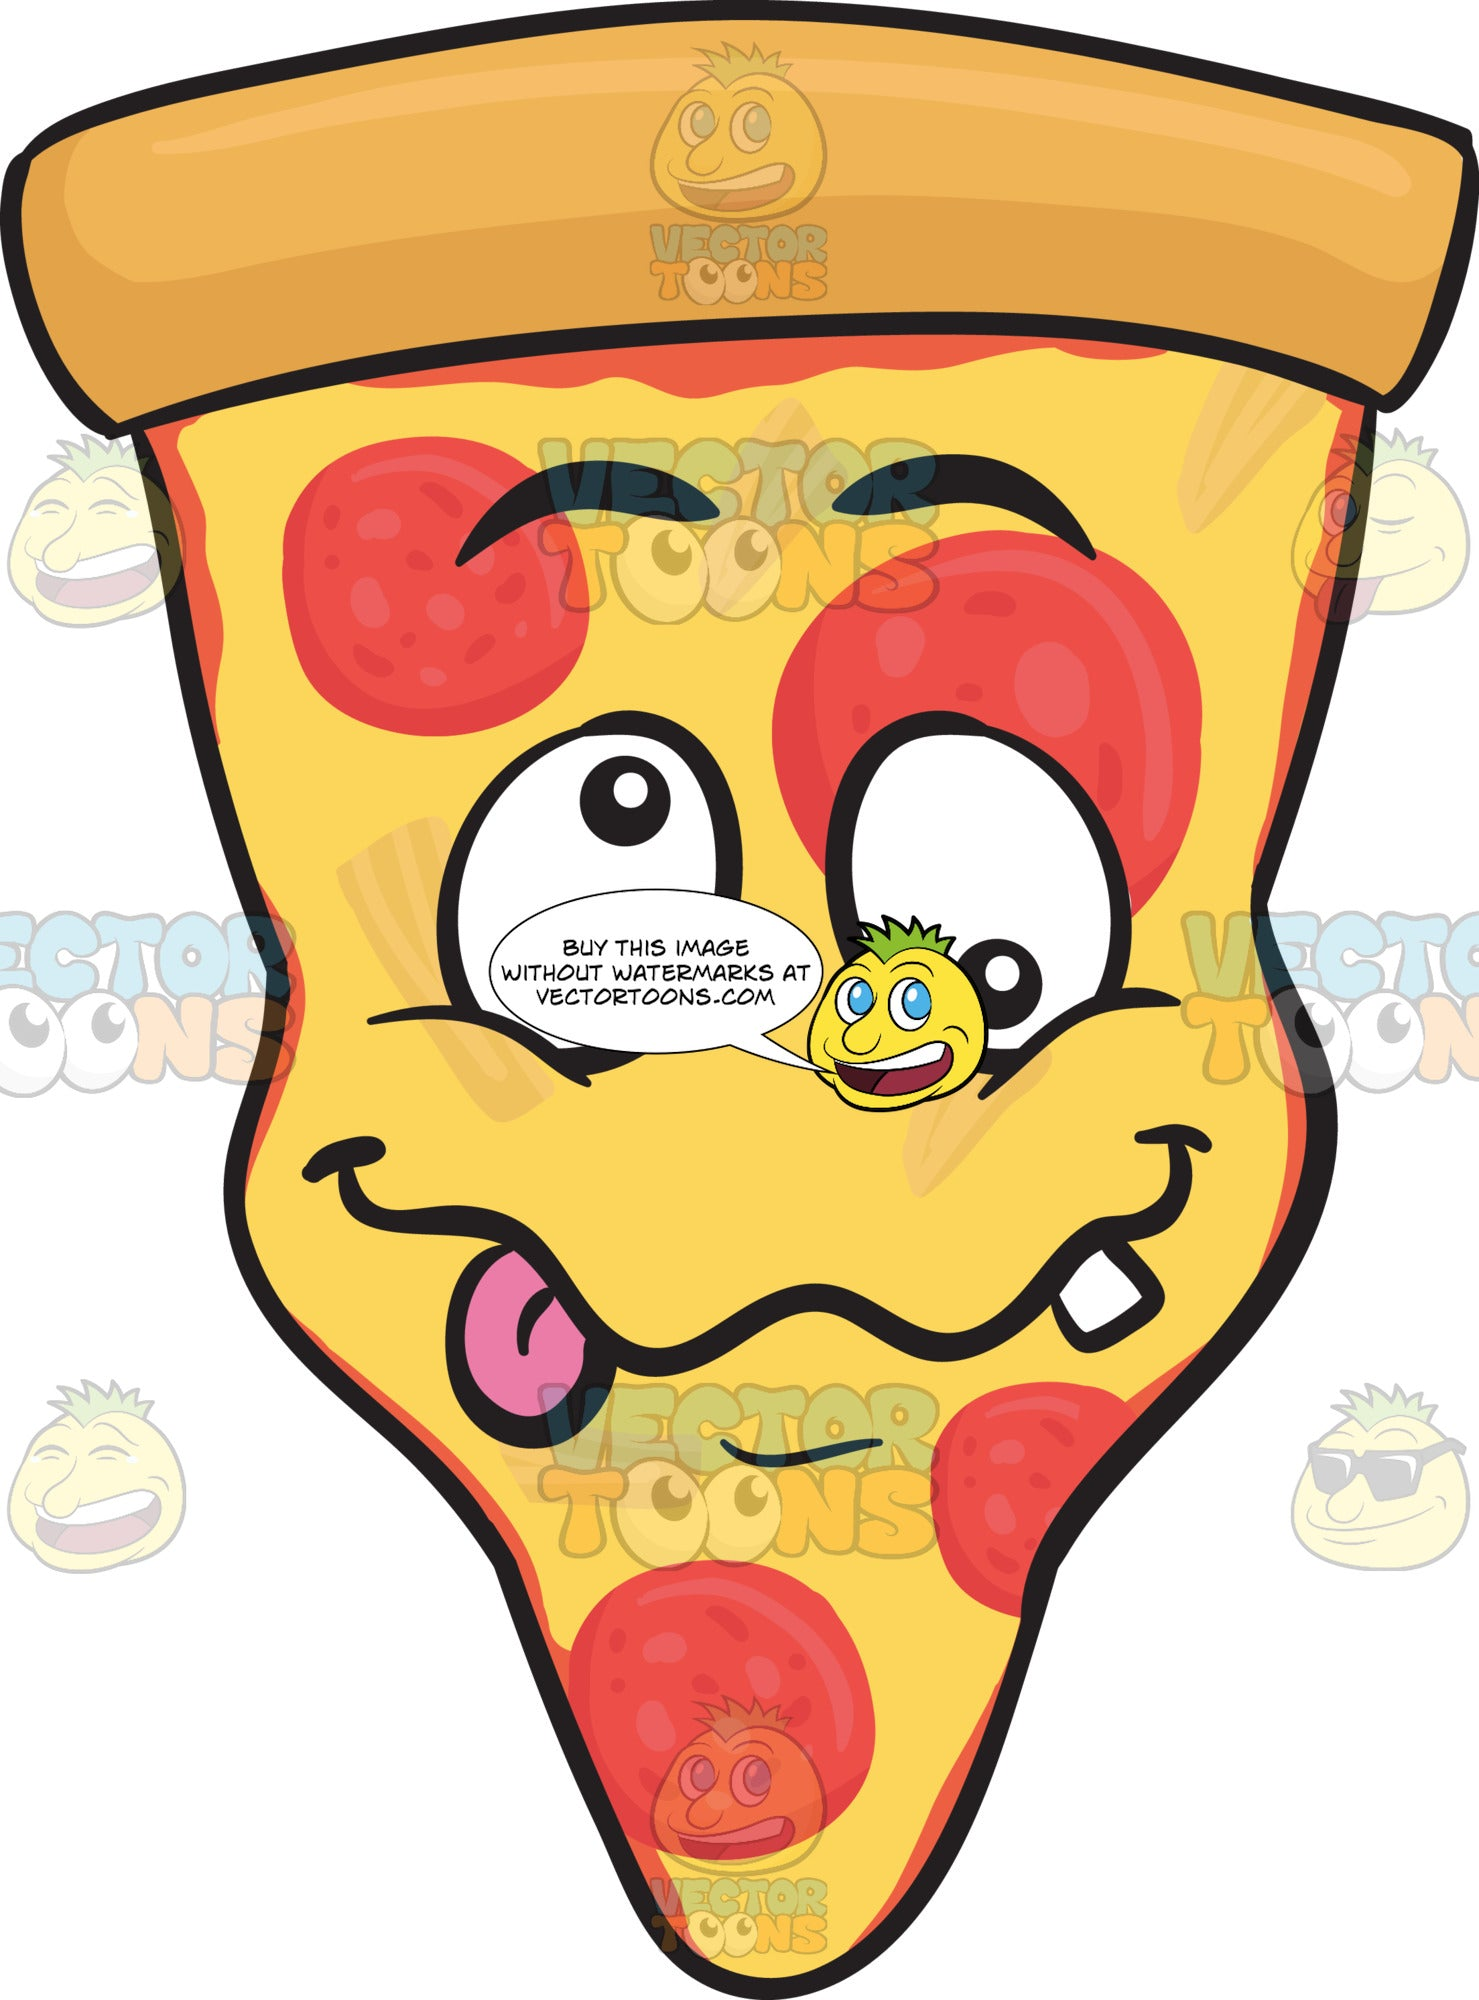 Crazy-Looney Looking Slice Of Pepperoni Pizza Emoji